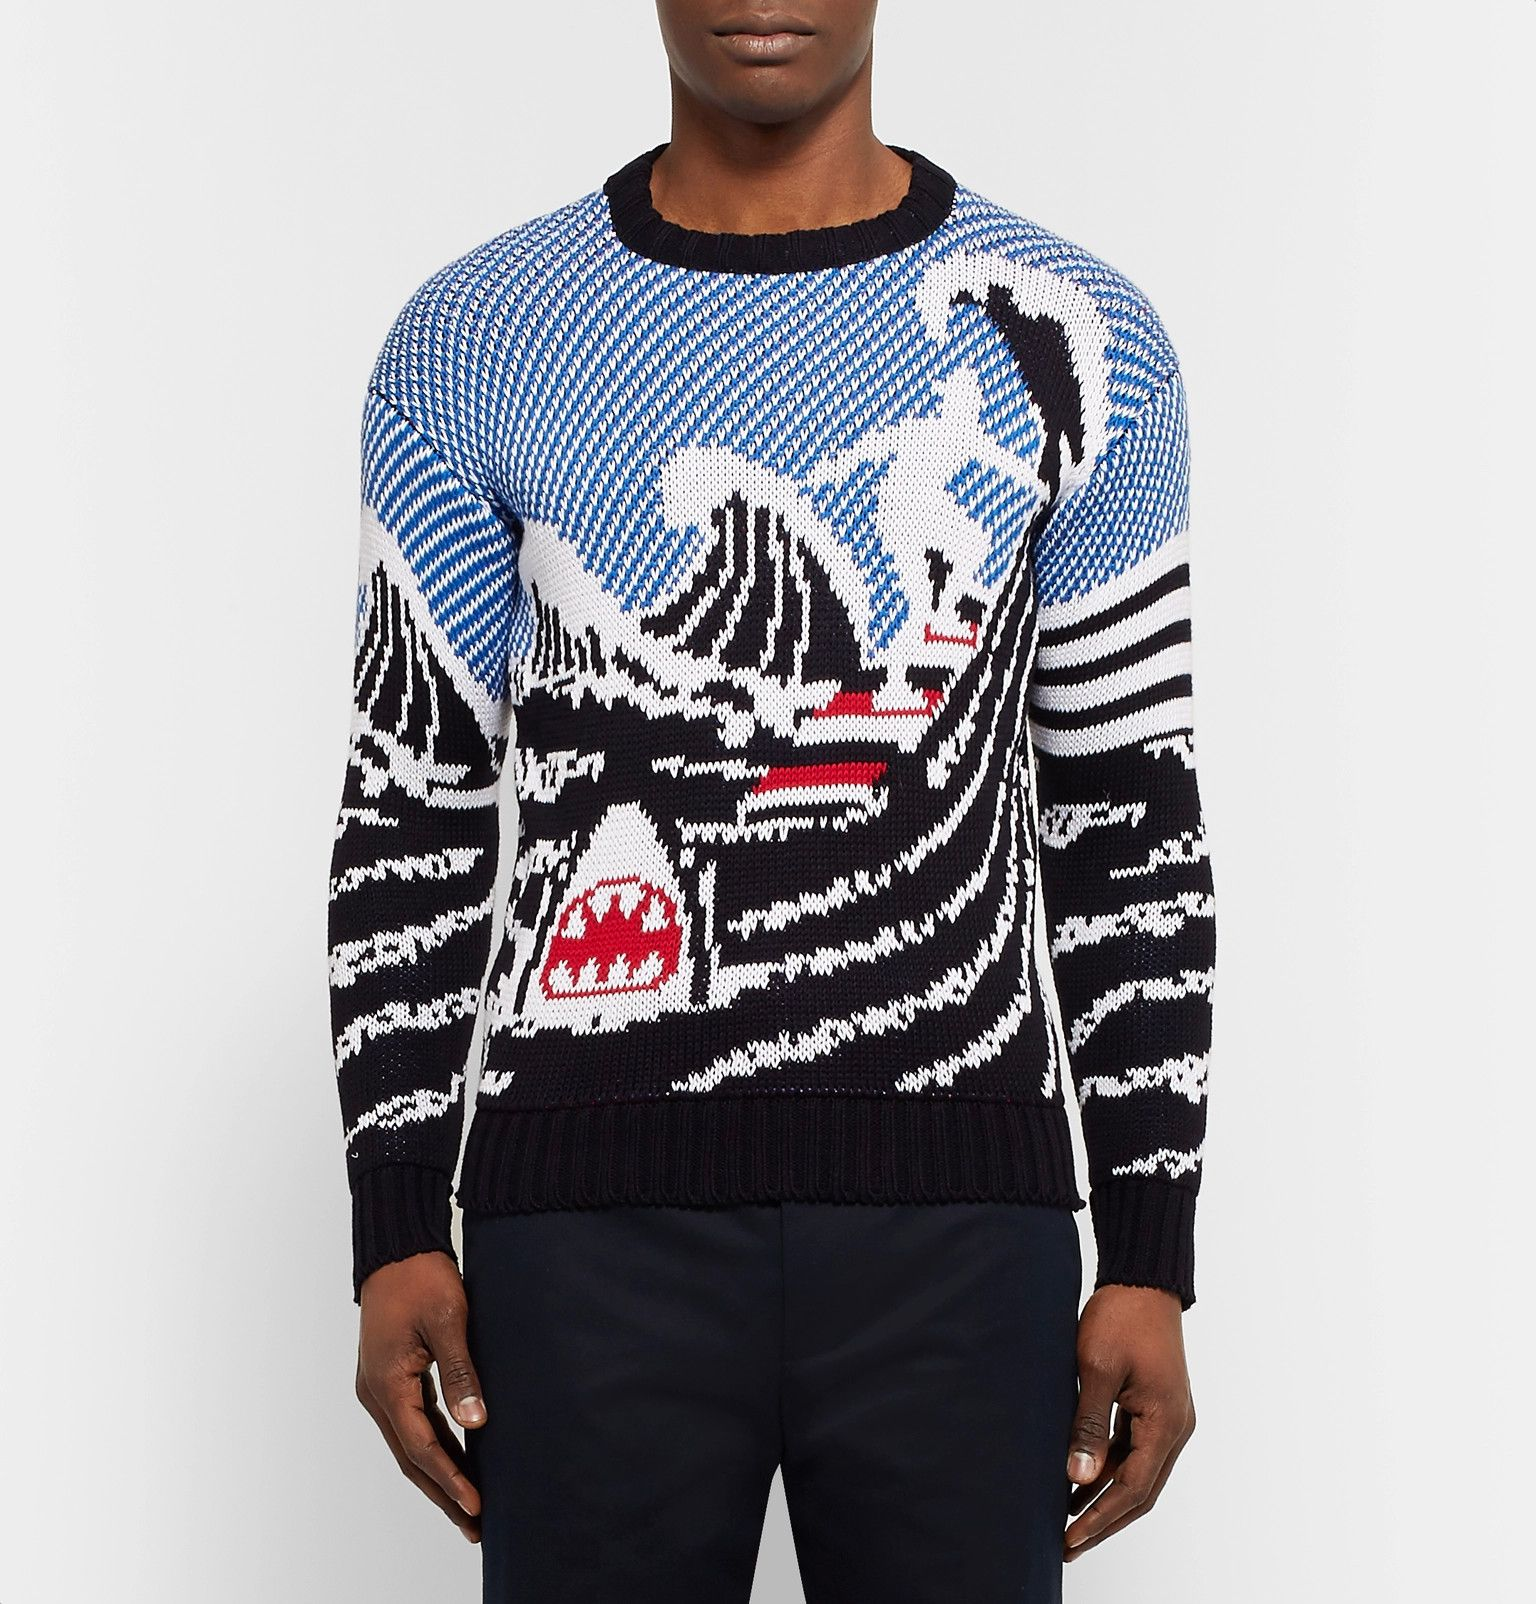 THOM BROWNE Jacquard-Knit Cotton Sweater | Men's Spring-Summer ...